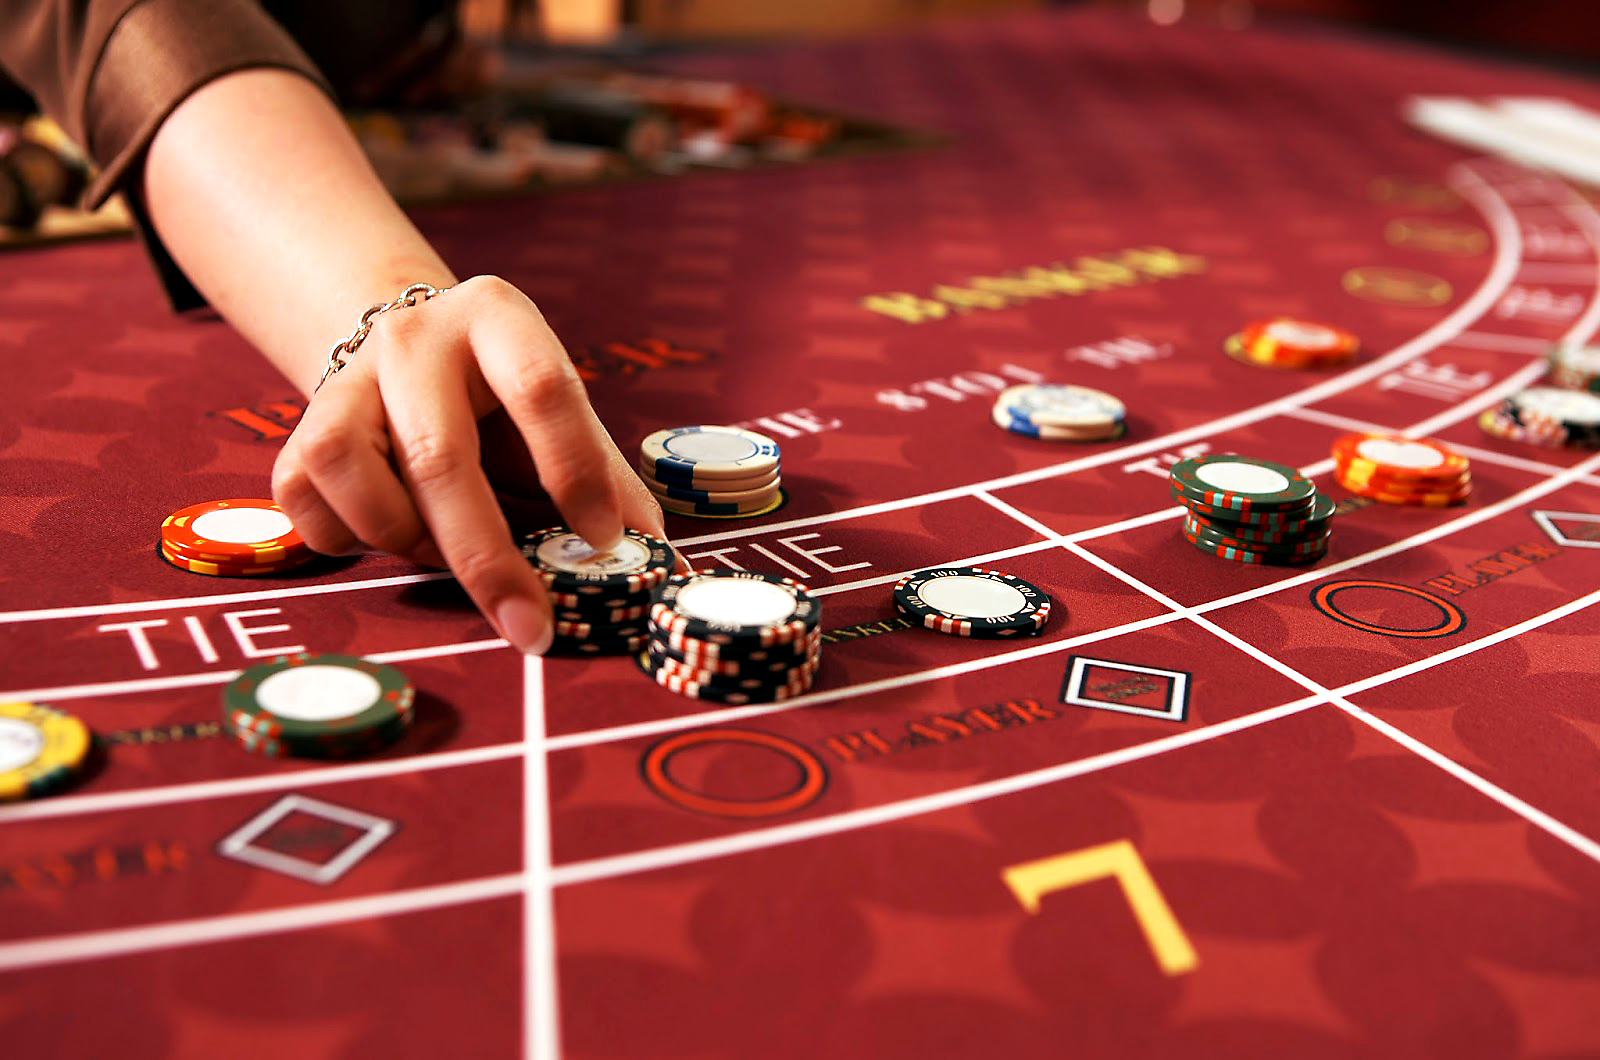 Birth of the game – how did baccarat come about and become a part of the casino world?